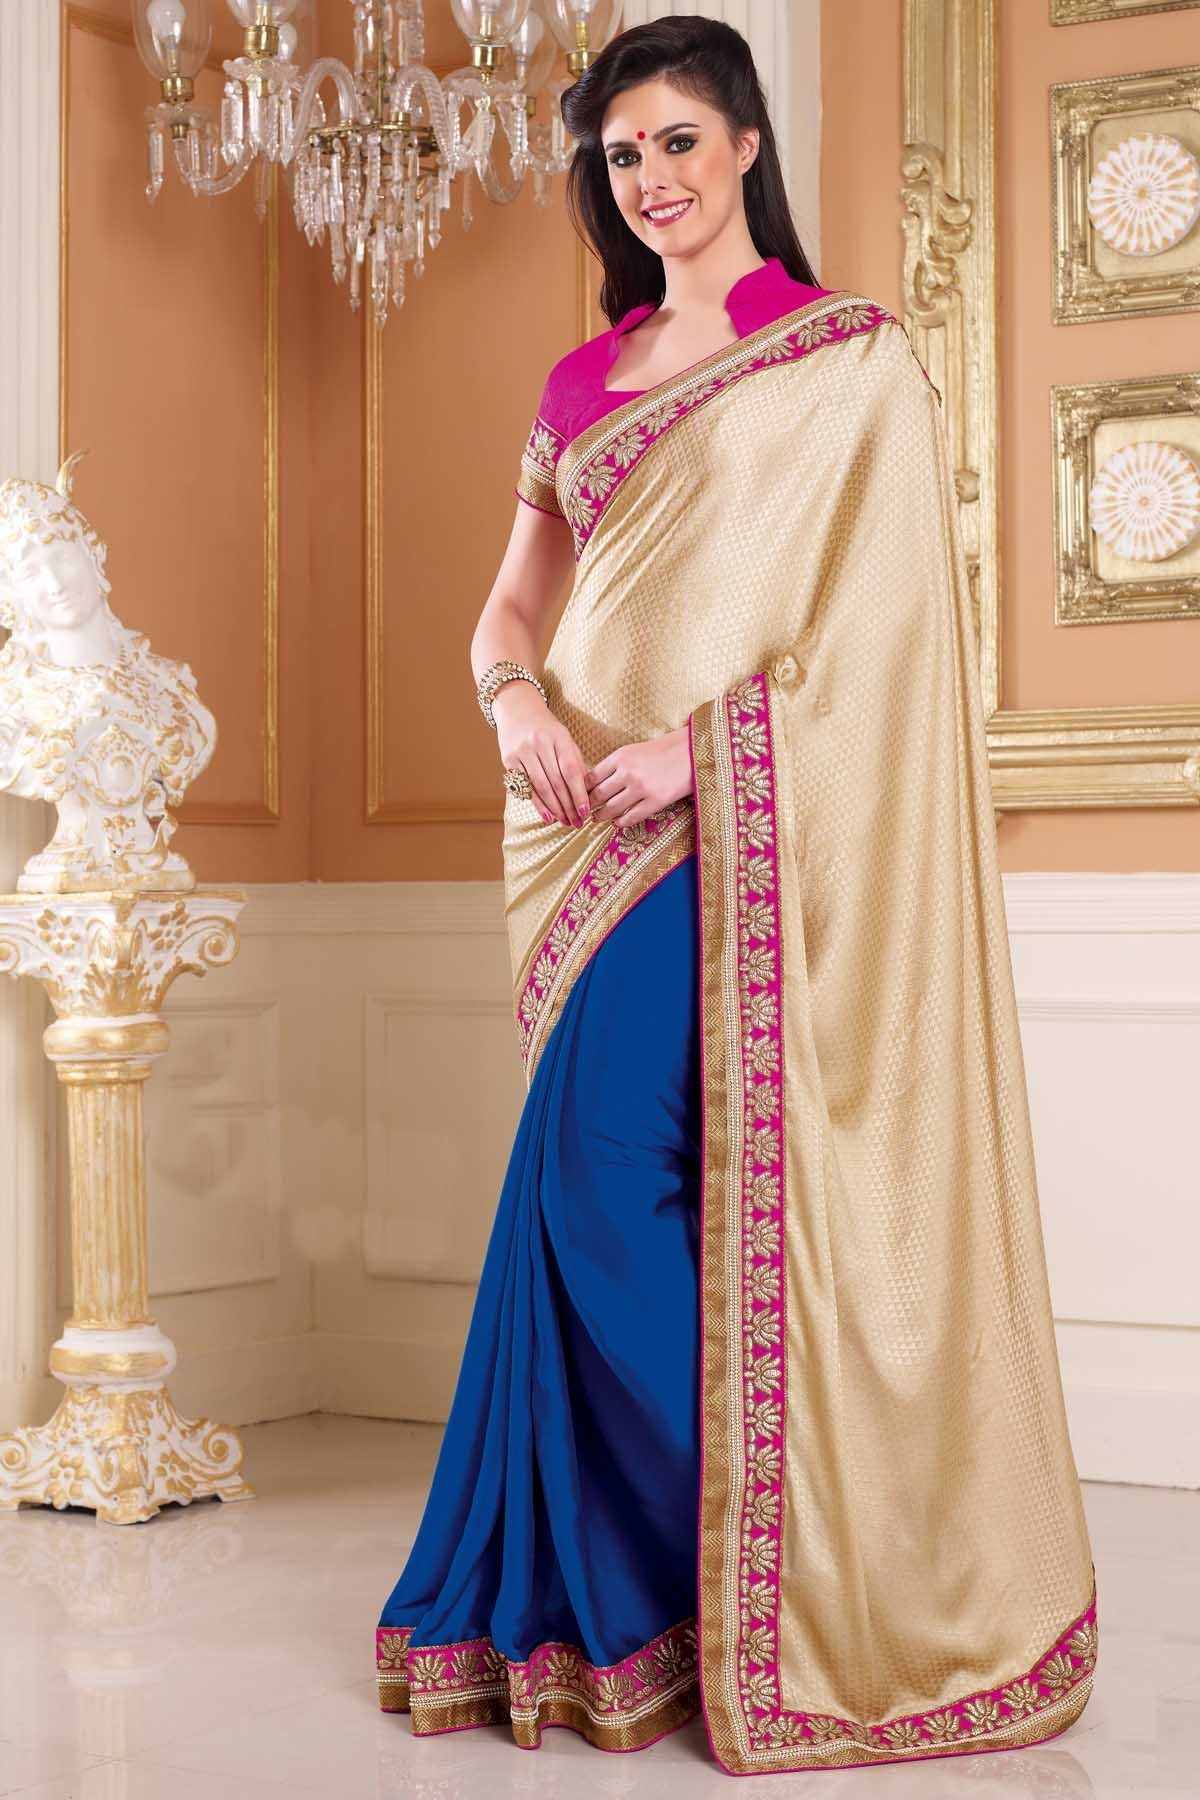 Indian Designer Bollywood Replica Actress In Chikoo Royal Blue Saree 1207 Available At